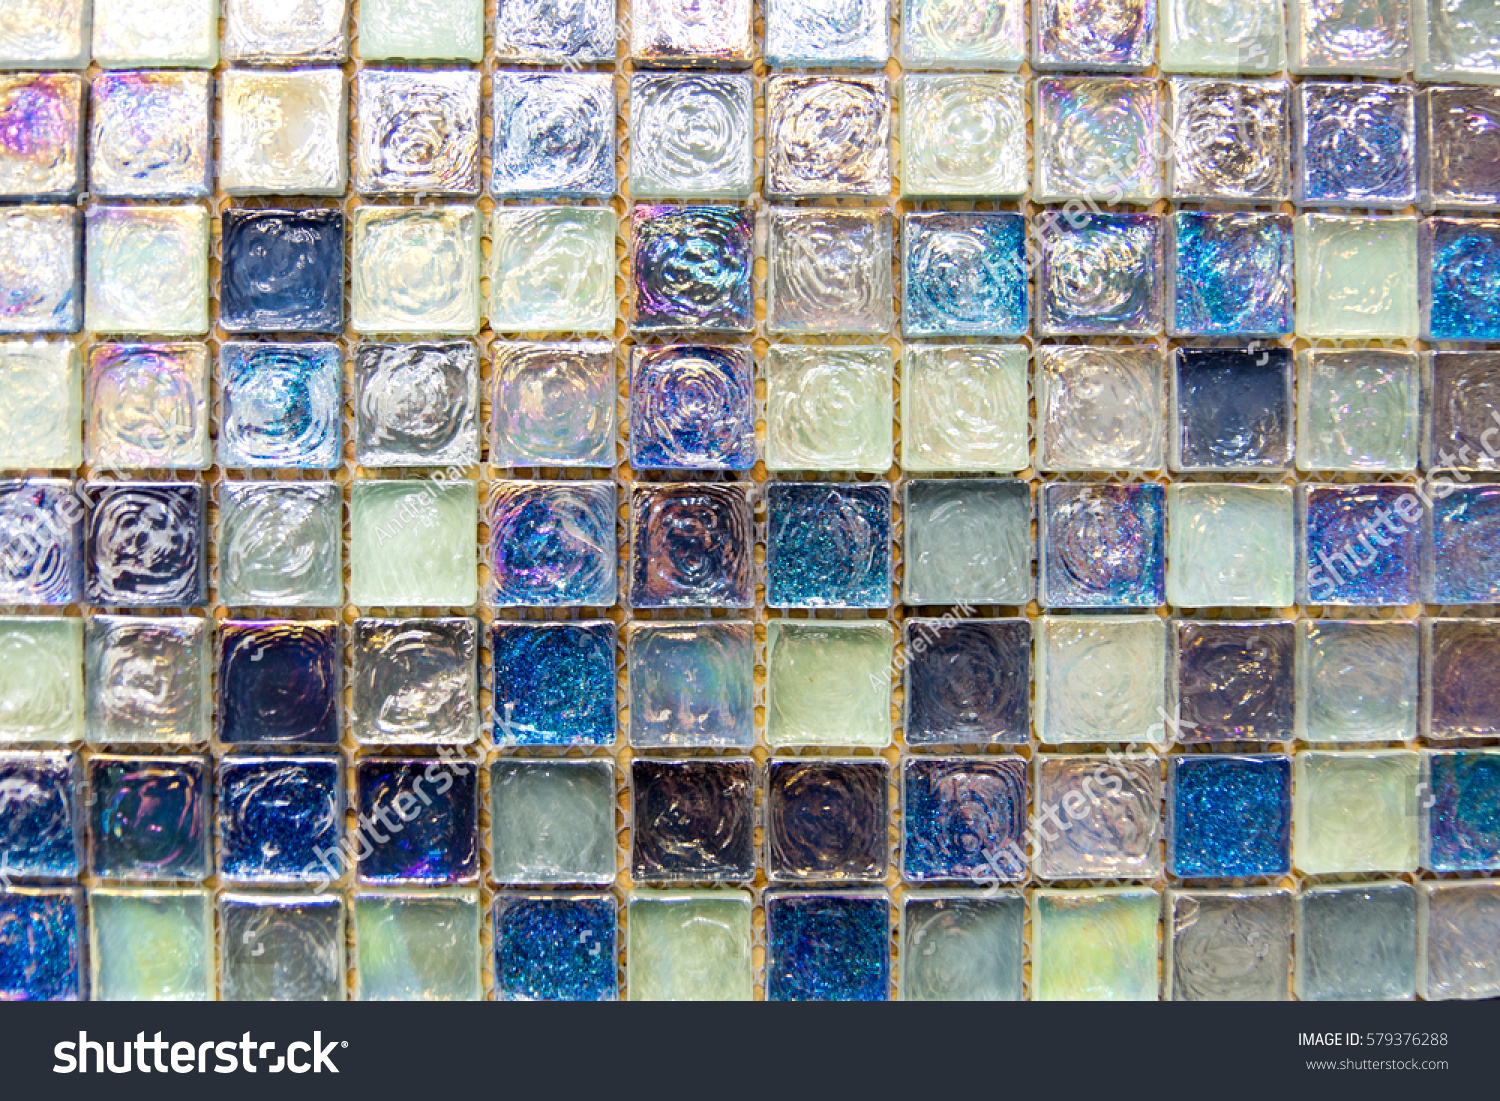 Ceramic decorative tiles different textures covering stock photo ceramic decorative tiles of different textures covering walls and floor in kitchen bathroom or toilet dailygadgetfo Image collections